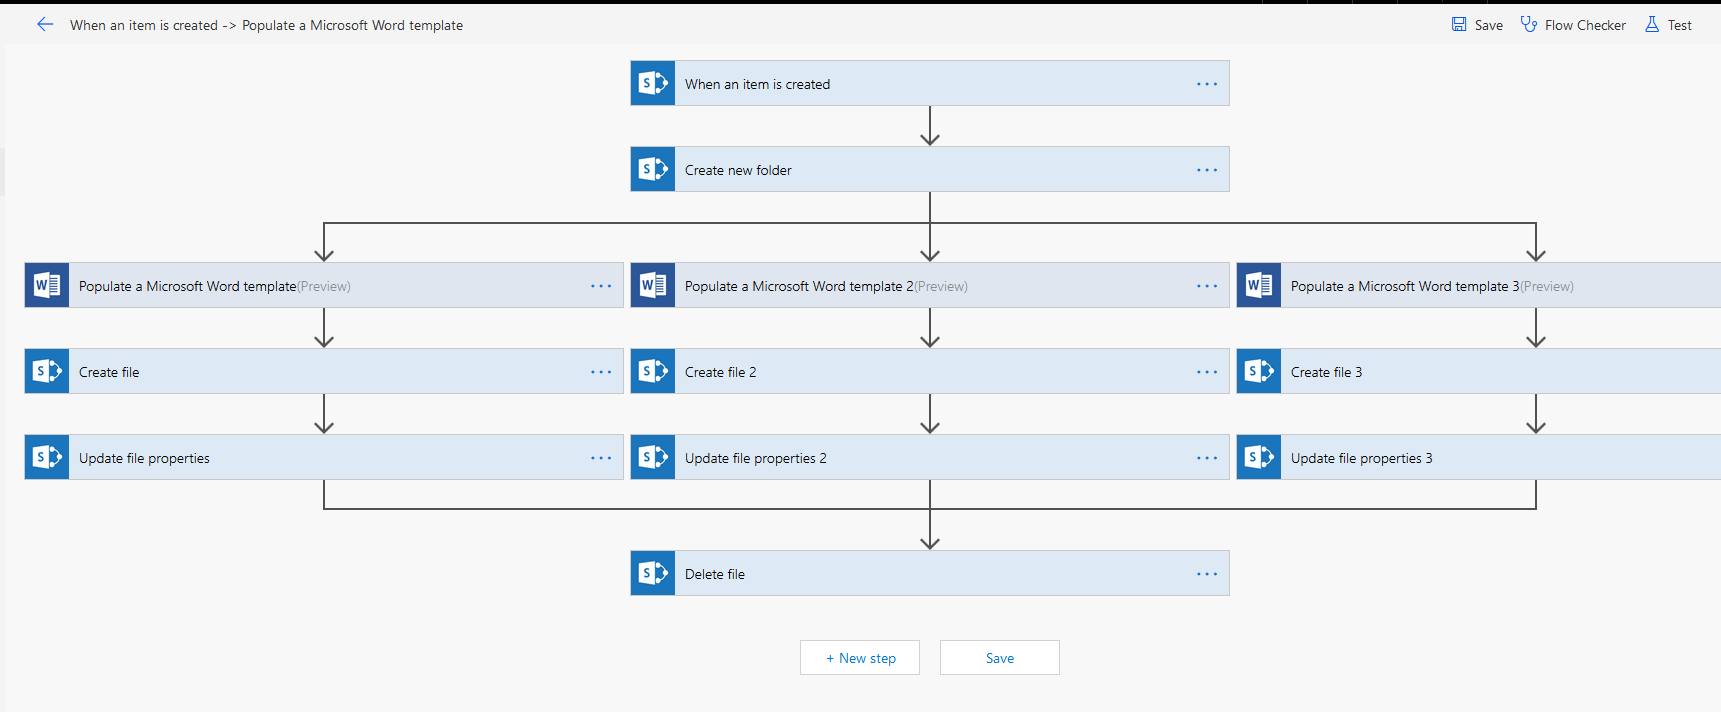 I will recreate your SharePoint Workflow in Microsoft Flow